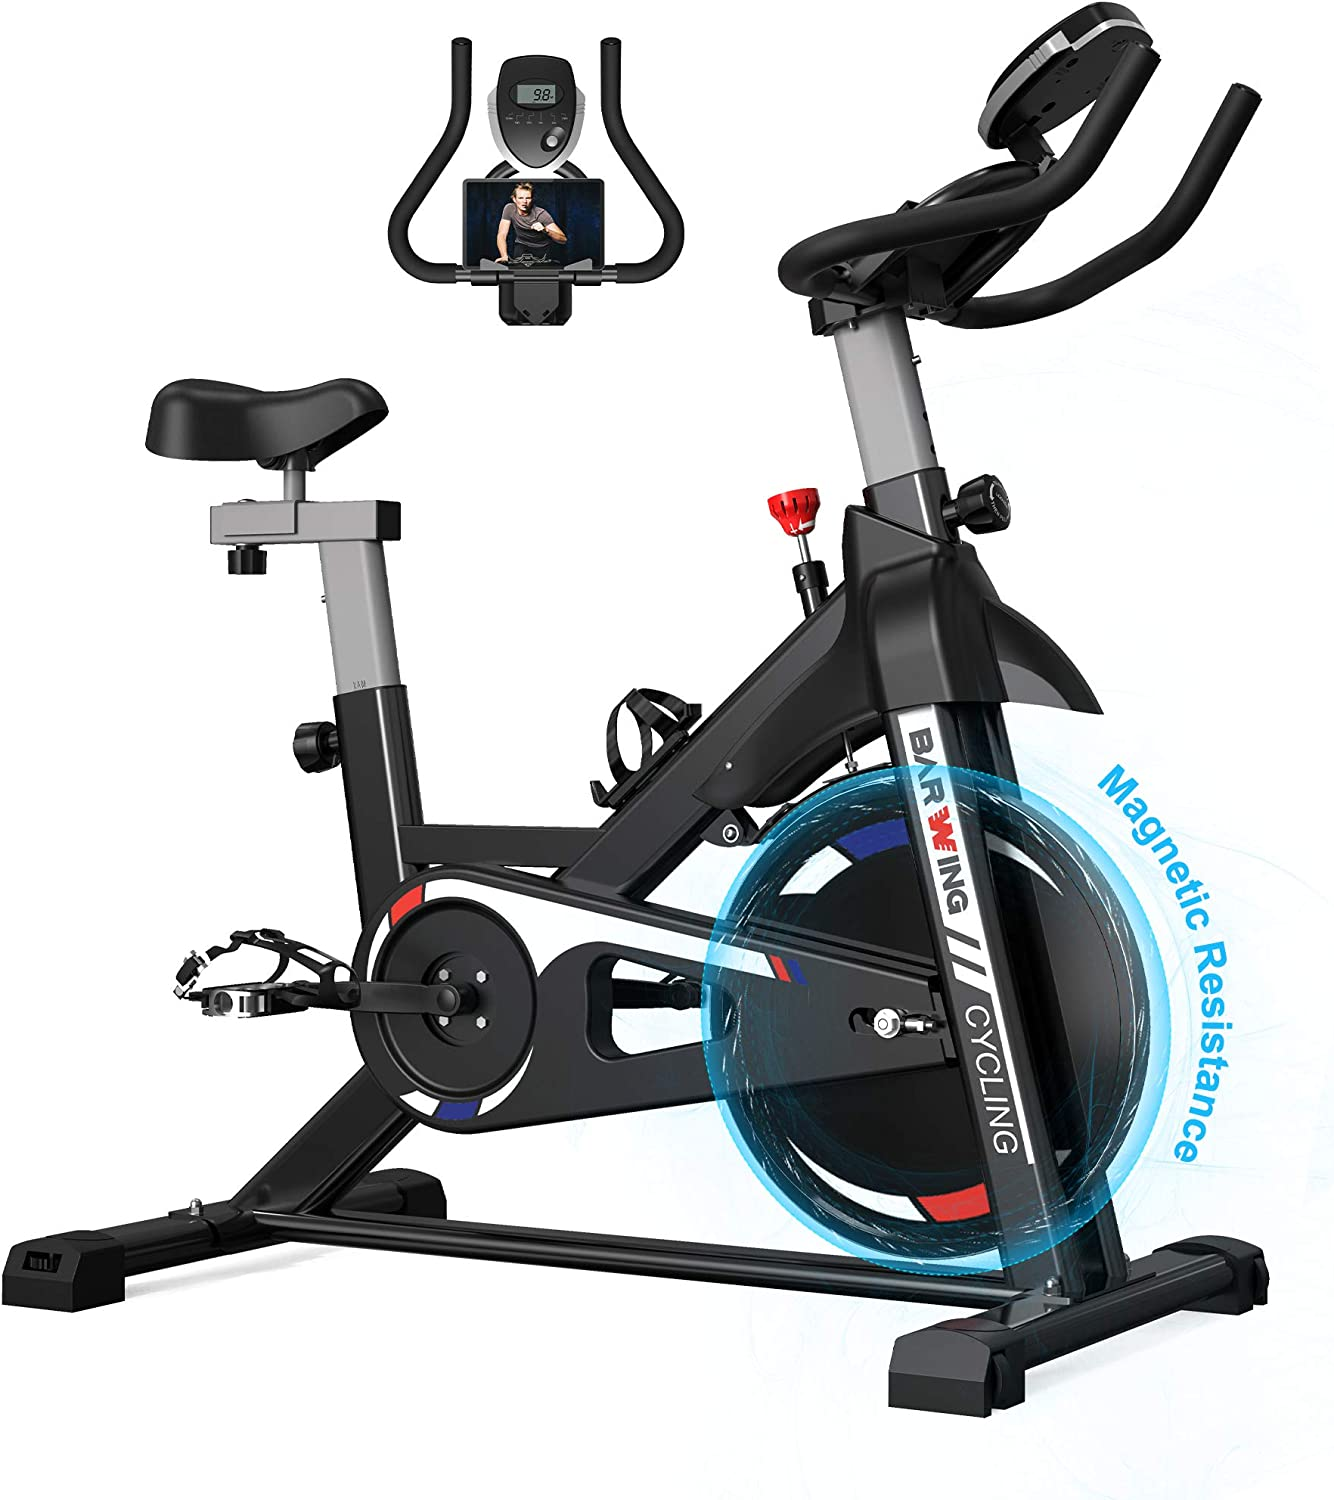 Barwing Magnetic stationary bike